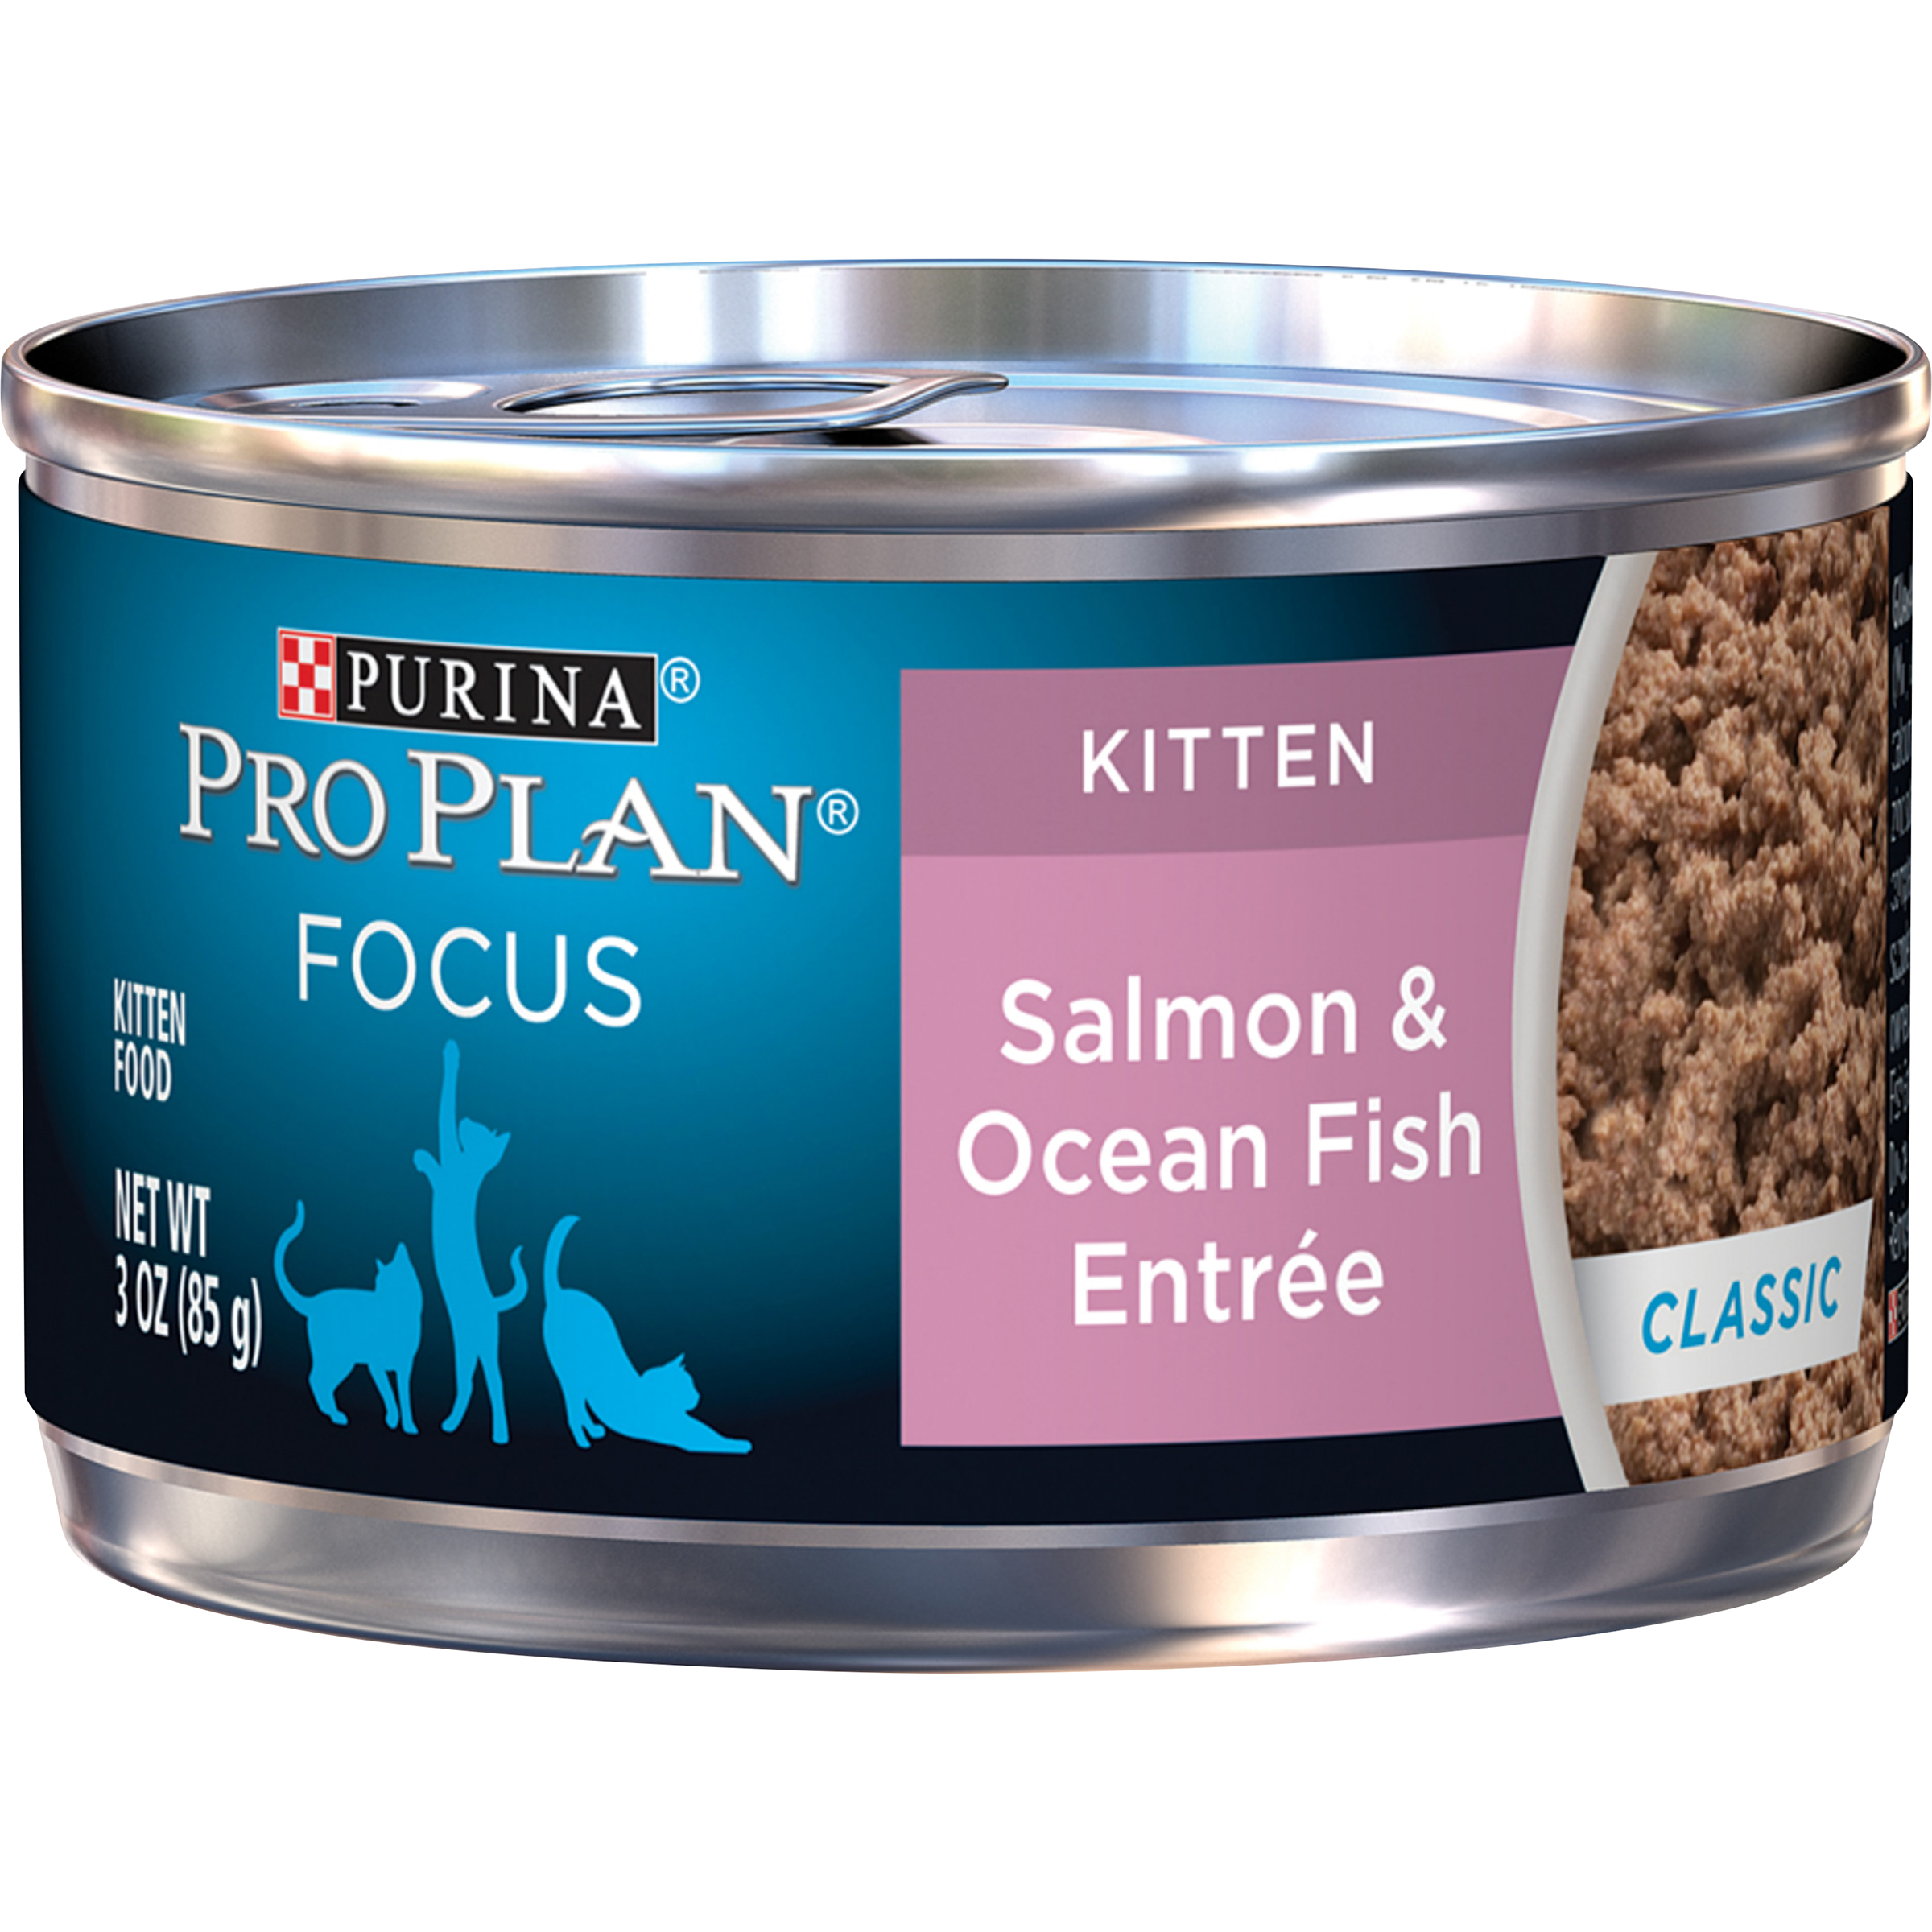 Purina Pro Plan Pate Wet Kitten Food; FOCUS Salmon & Ocean Fish Entree - 3 oz. Pull-Top Can